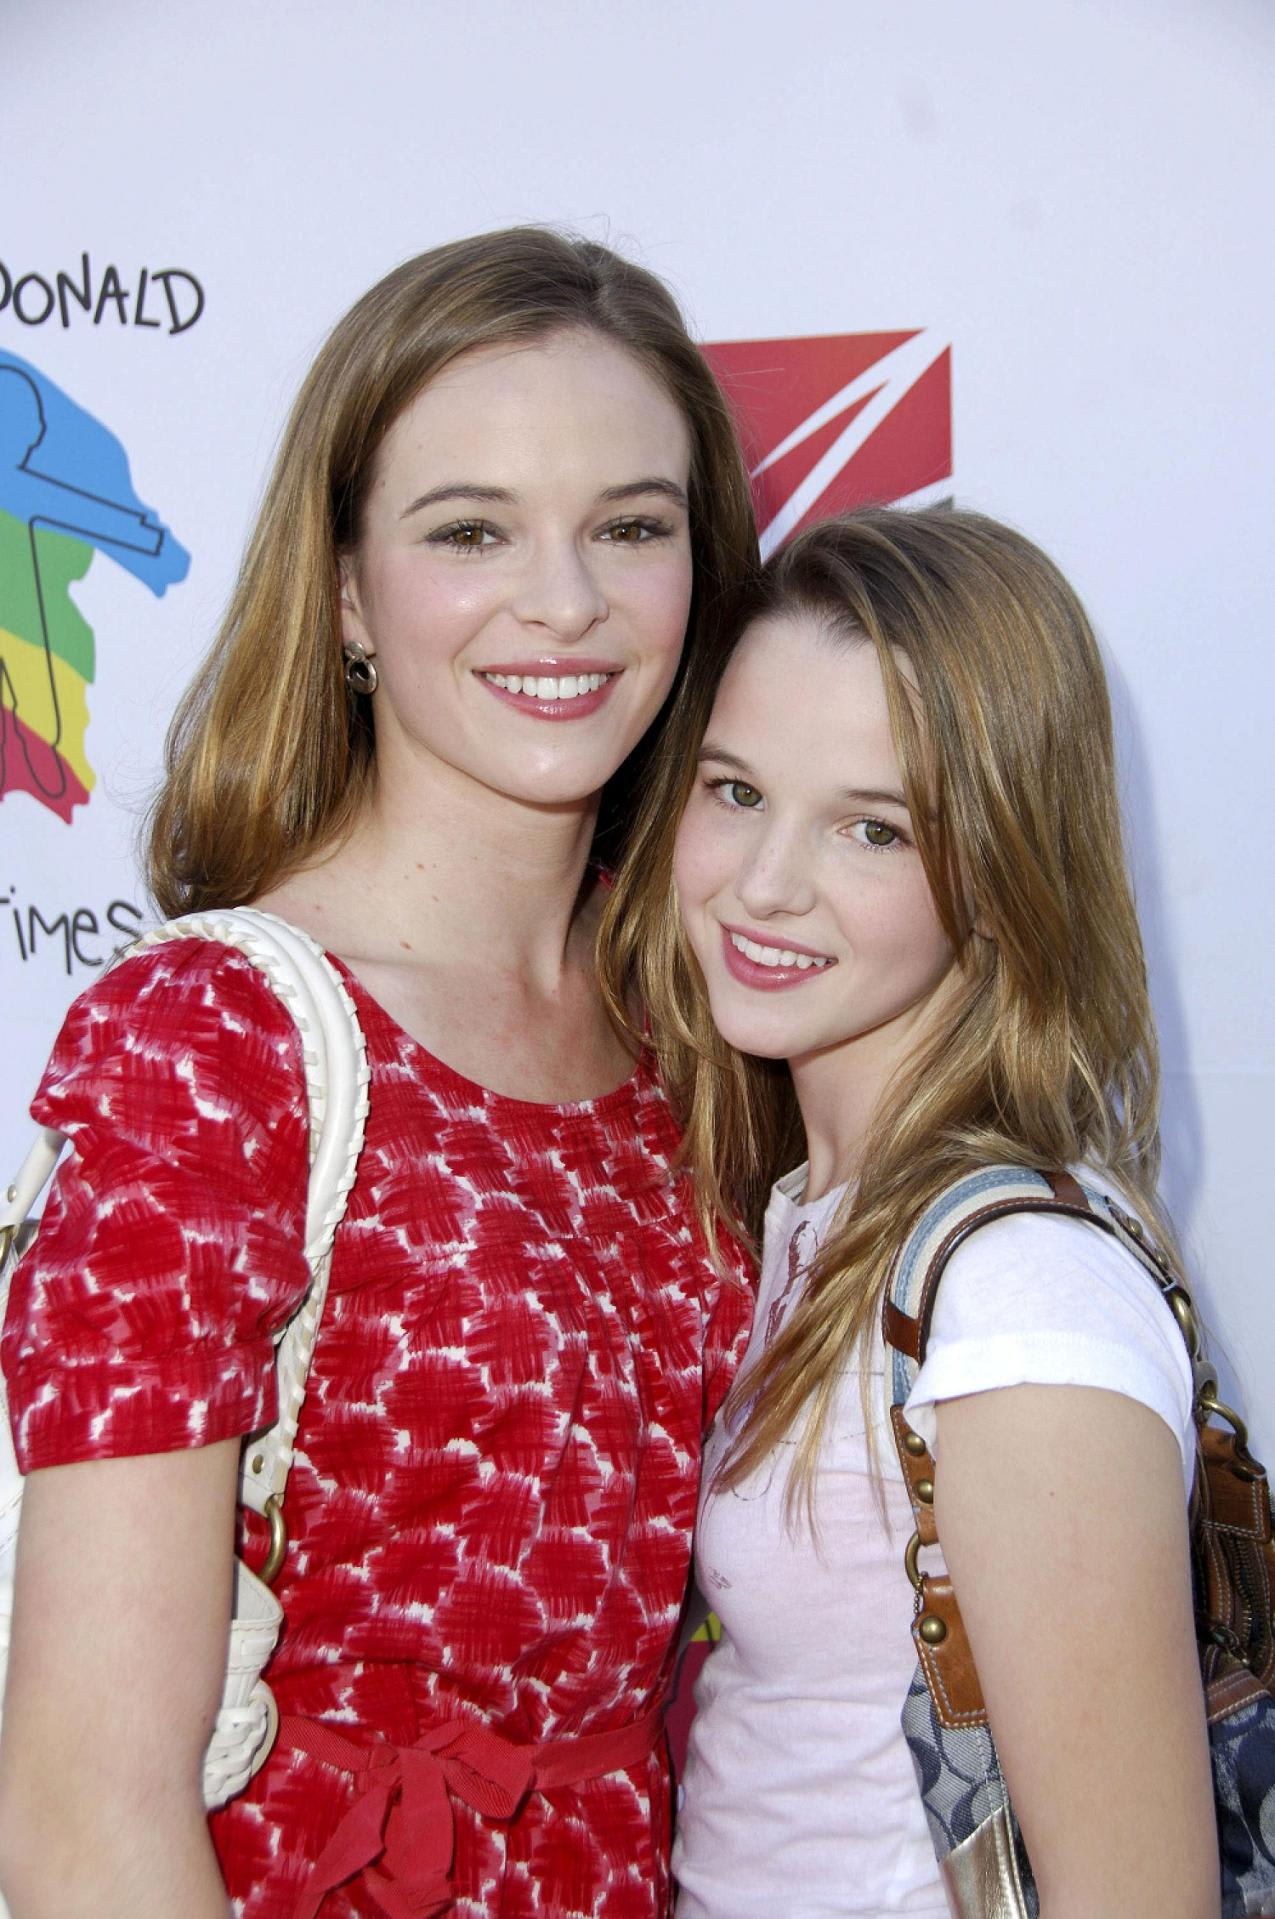 Kay Panabaker - Halloween Carnival 22 Oct 2006 - Favorite Celebrity Pictures-3475